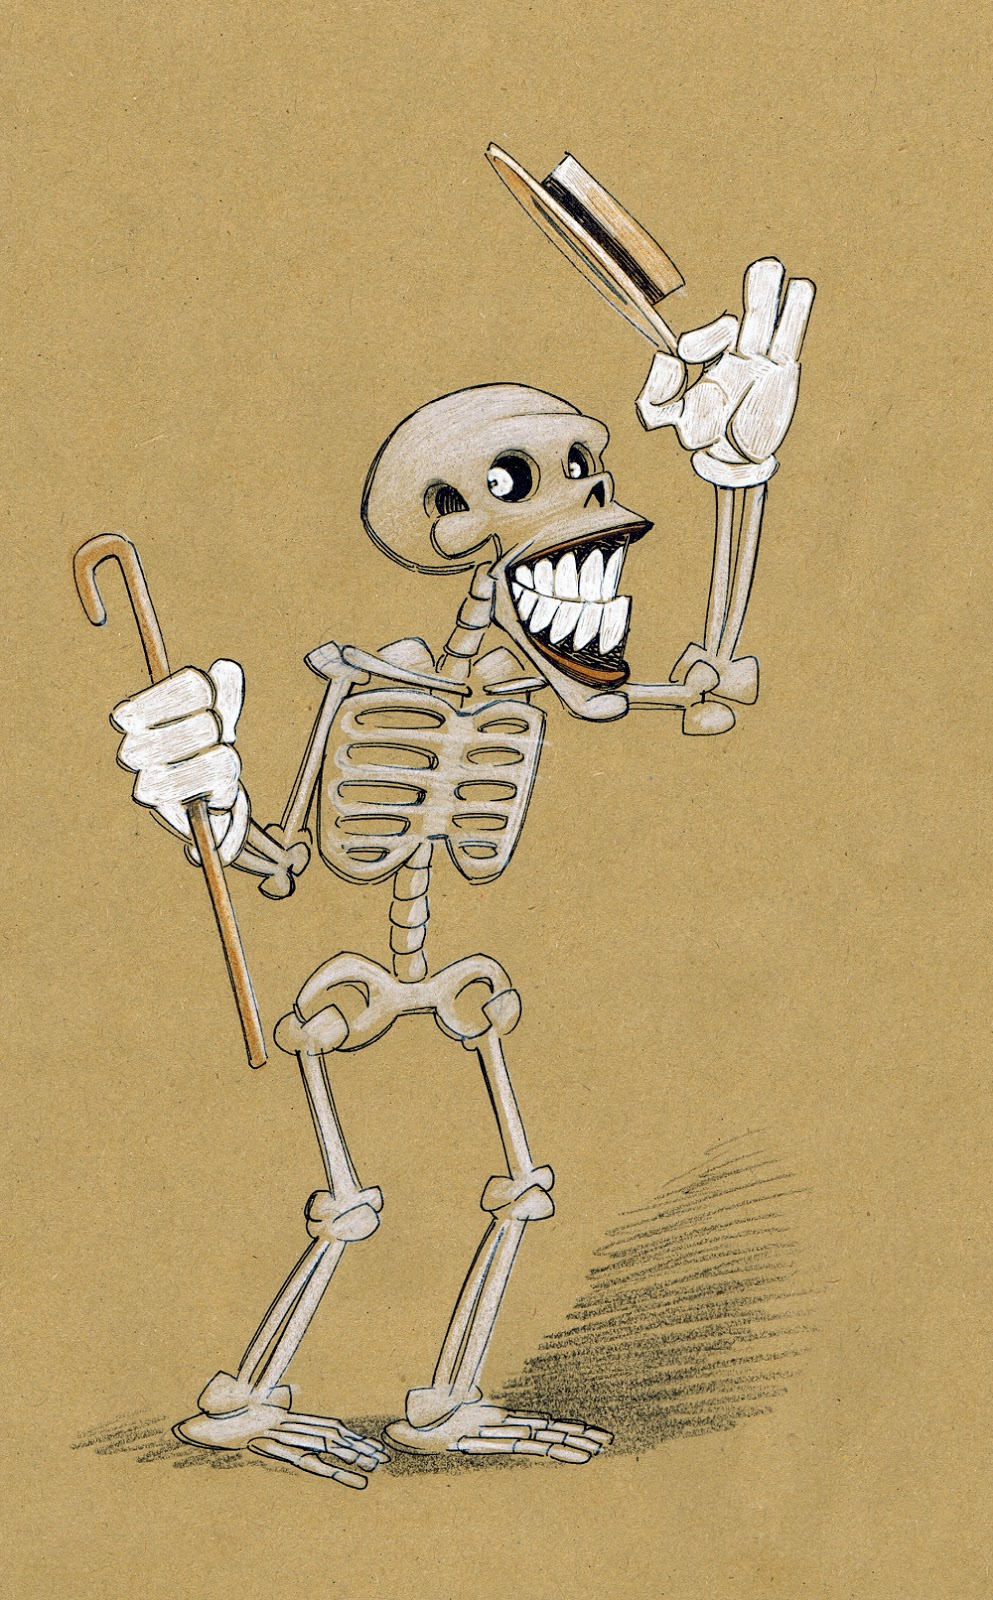 http://hotelfred.bigcartel.com/product/vaudeville-skeleton-sketch